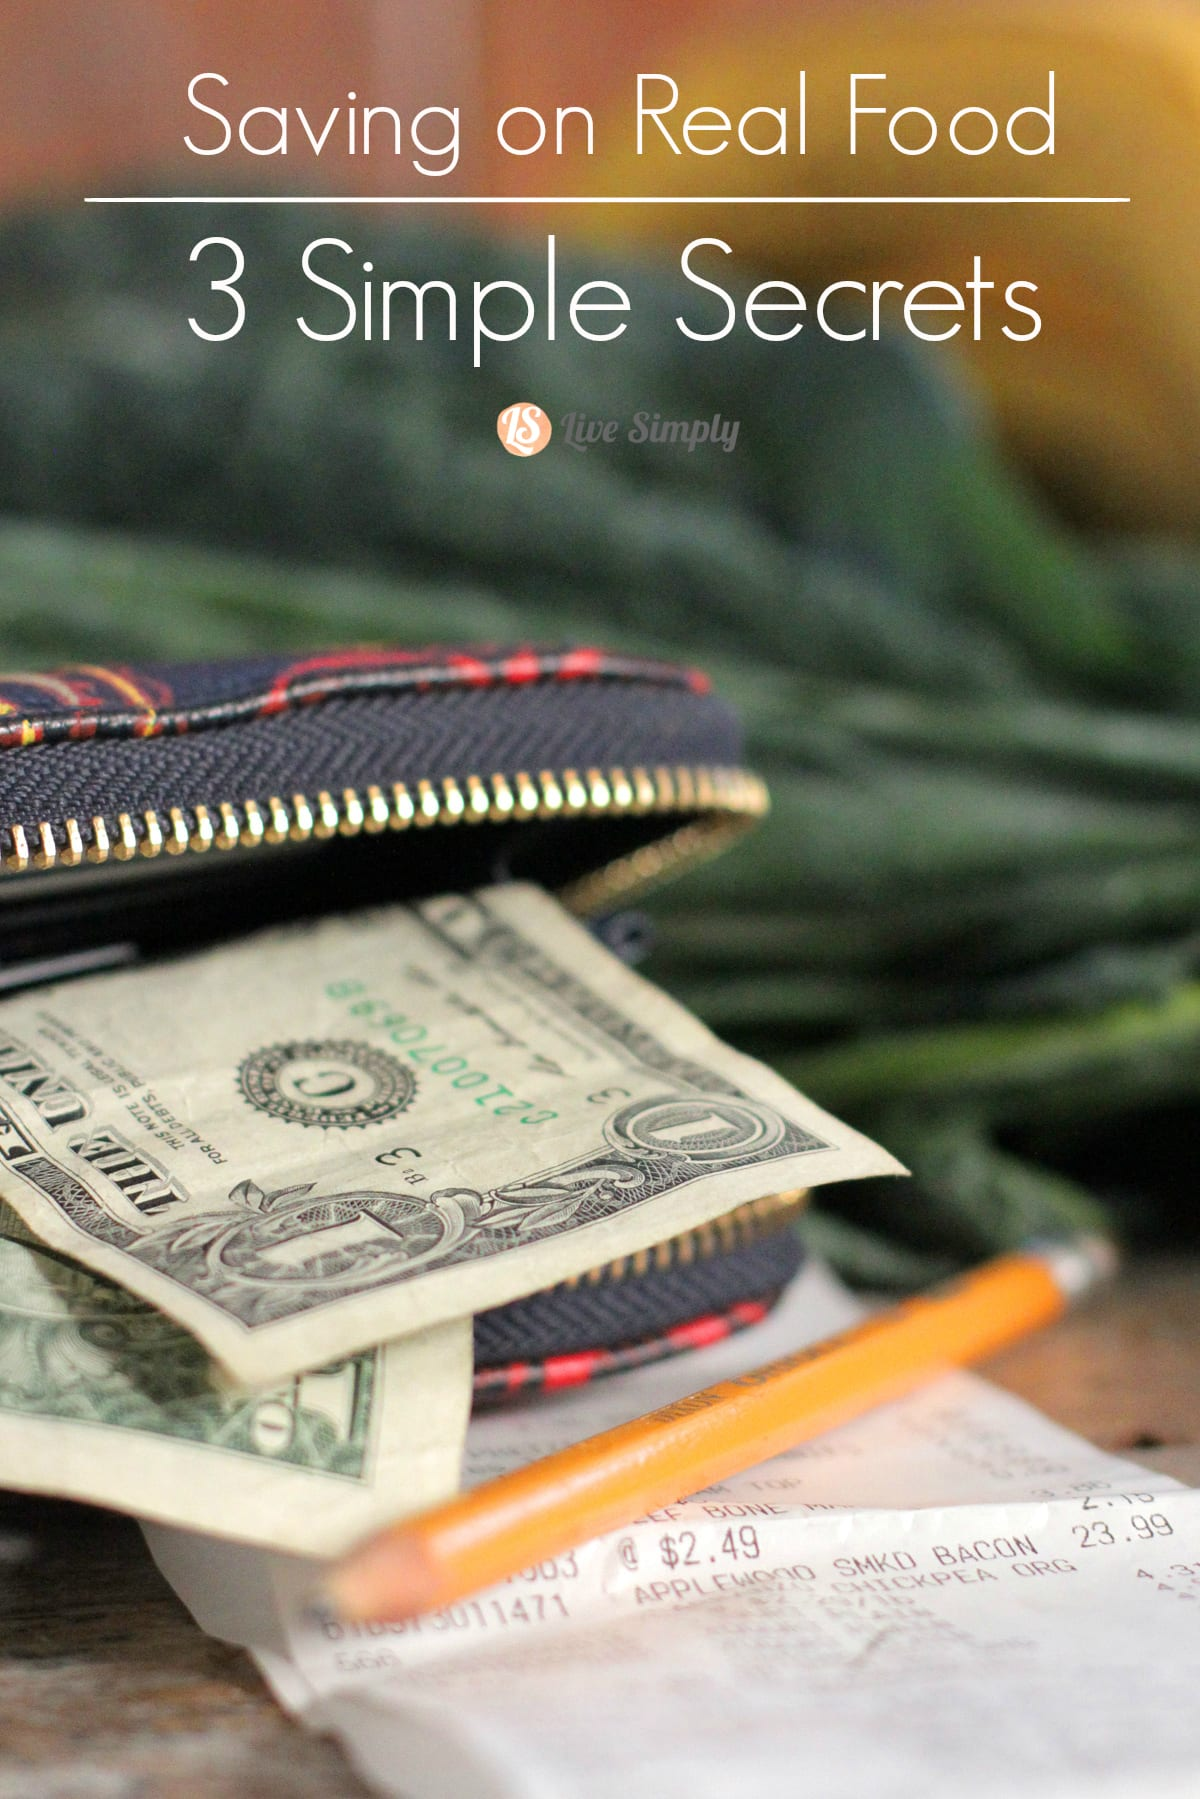 Saving on Real Food: 3 Simple Secrets